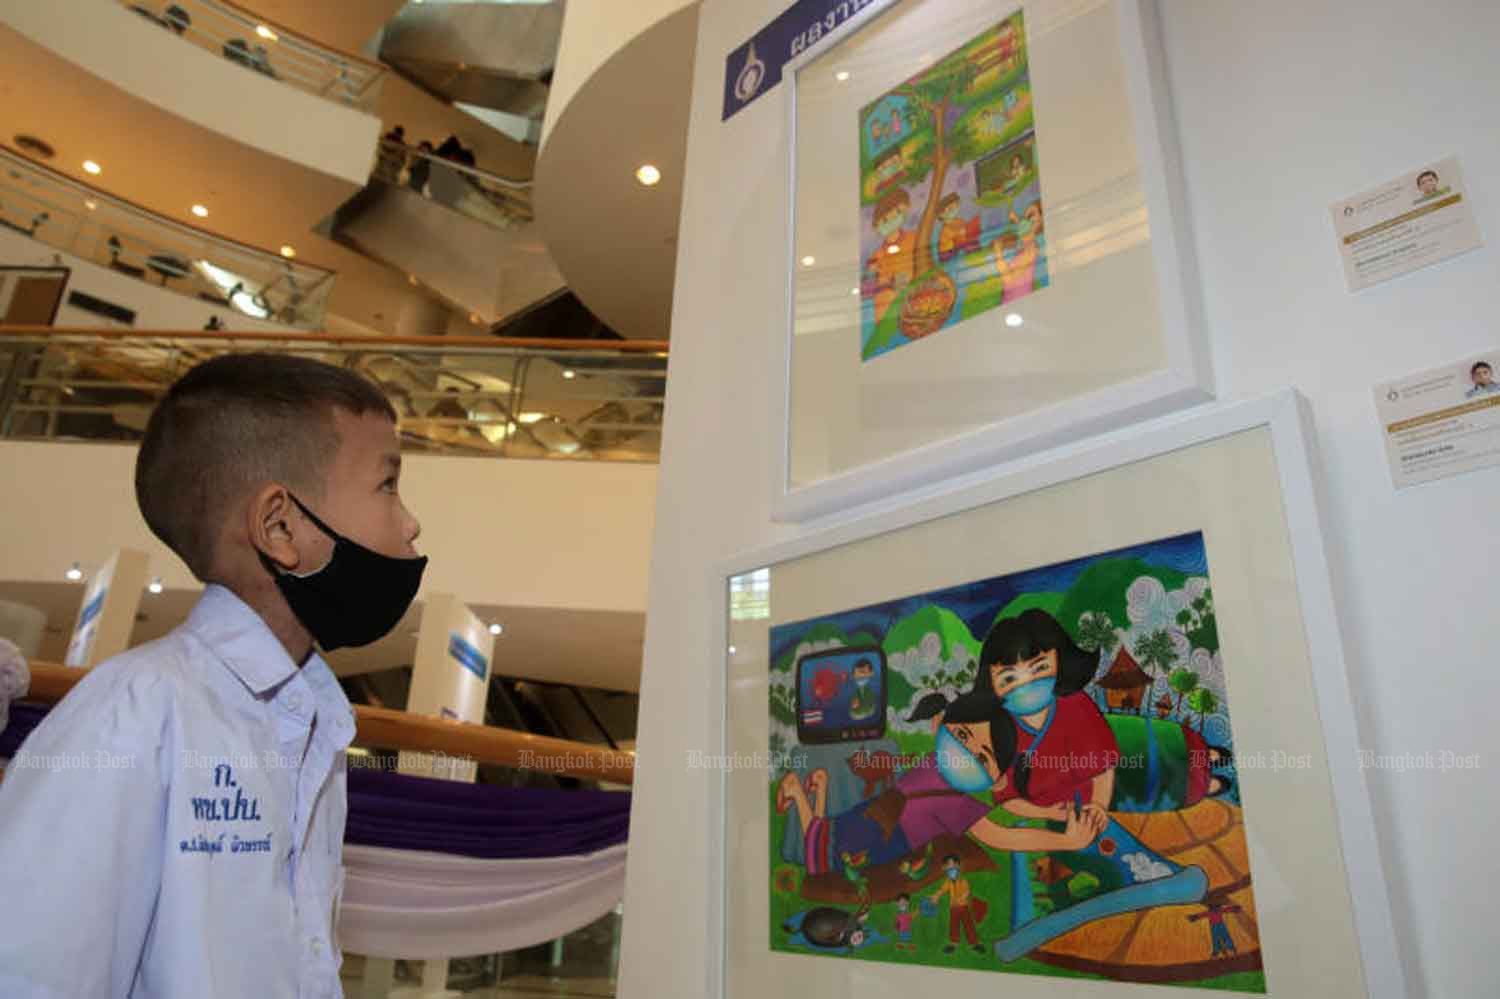 A school pupil views an exhibition of children's paintings about their Covid-19 experience, at the Bangkok Art and Culture Centre on Tuesday. (Photo: Chanat Katanyu)